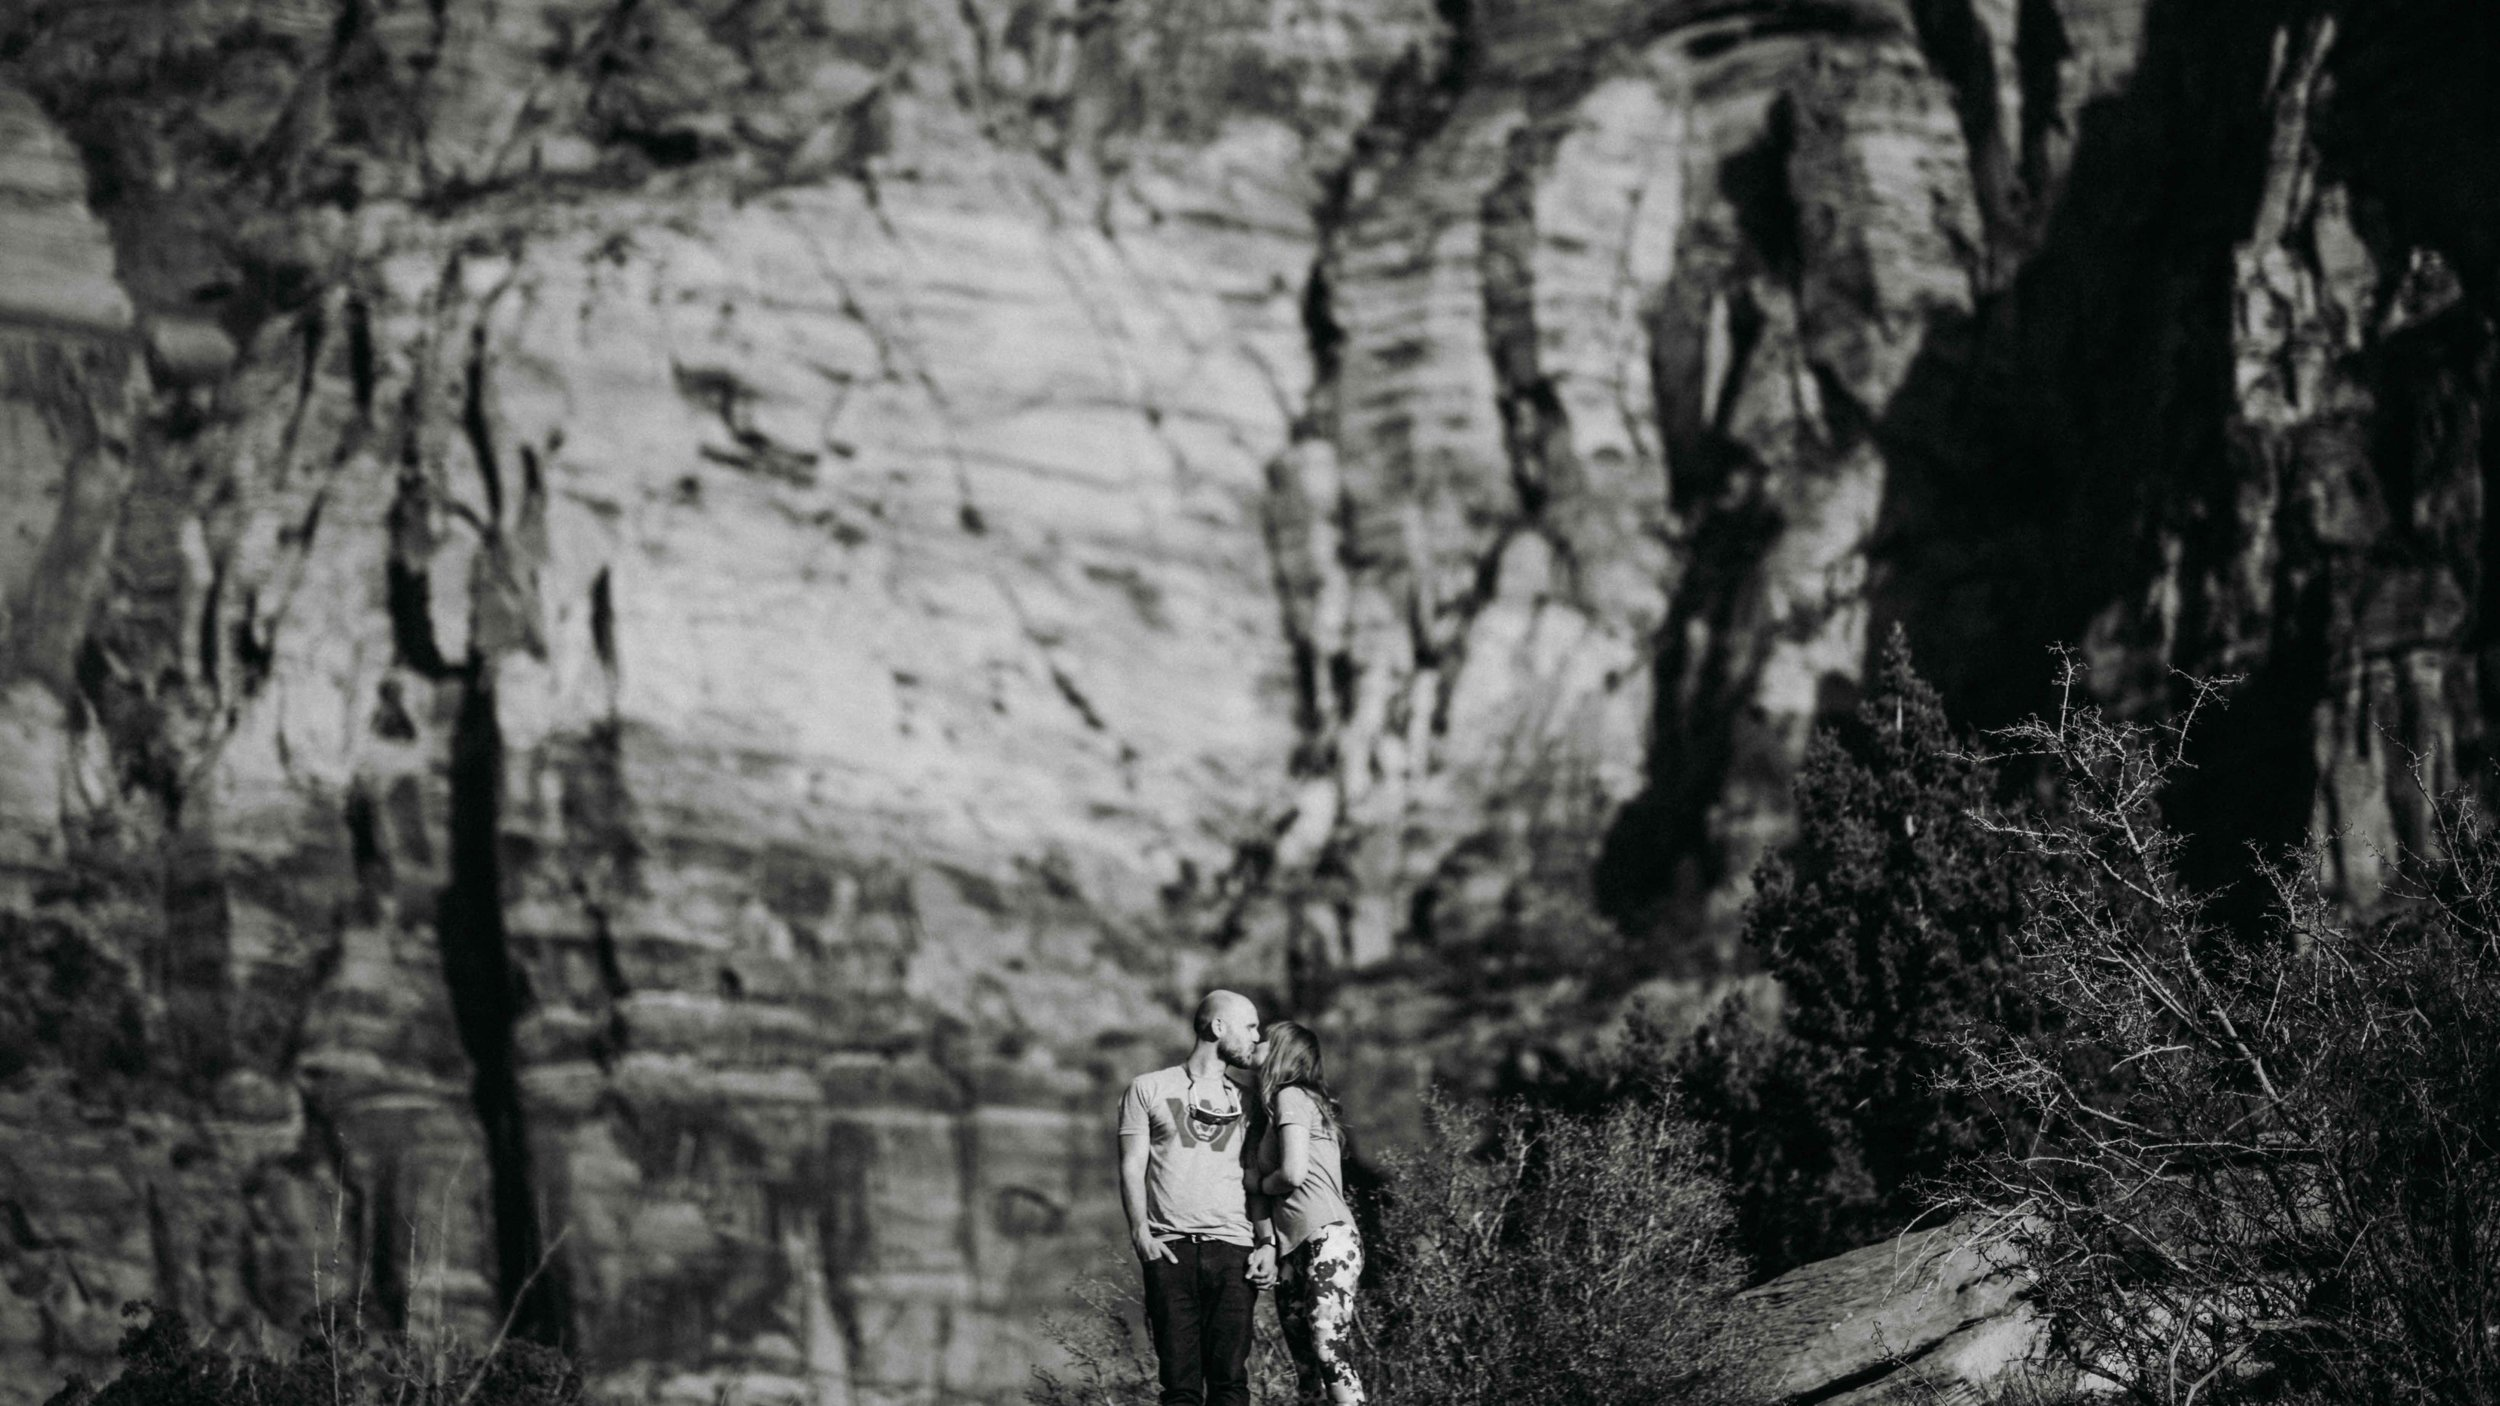 zion_national_park_utah_wedding_photography_engagement-2619.JPG